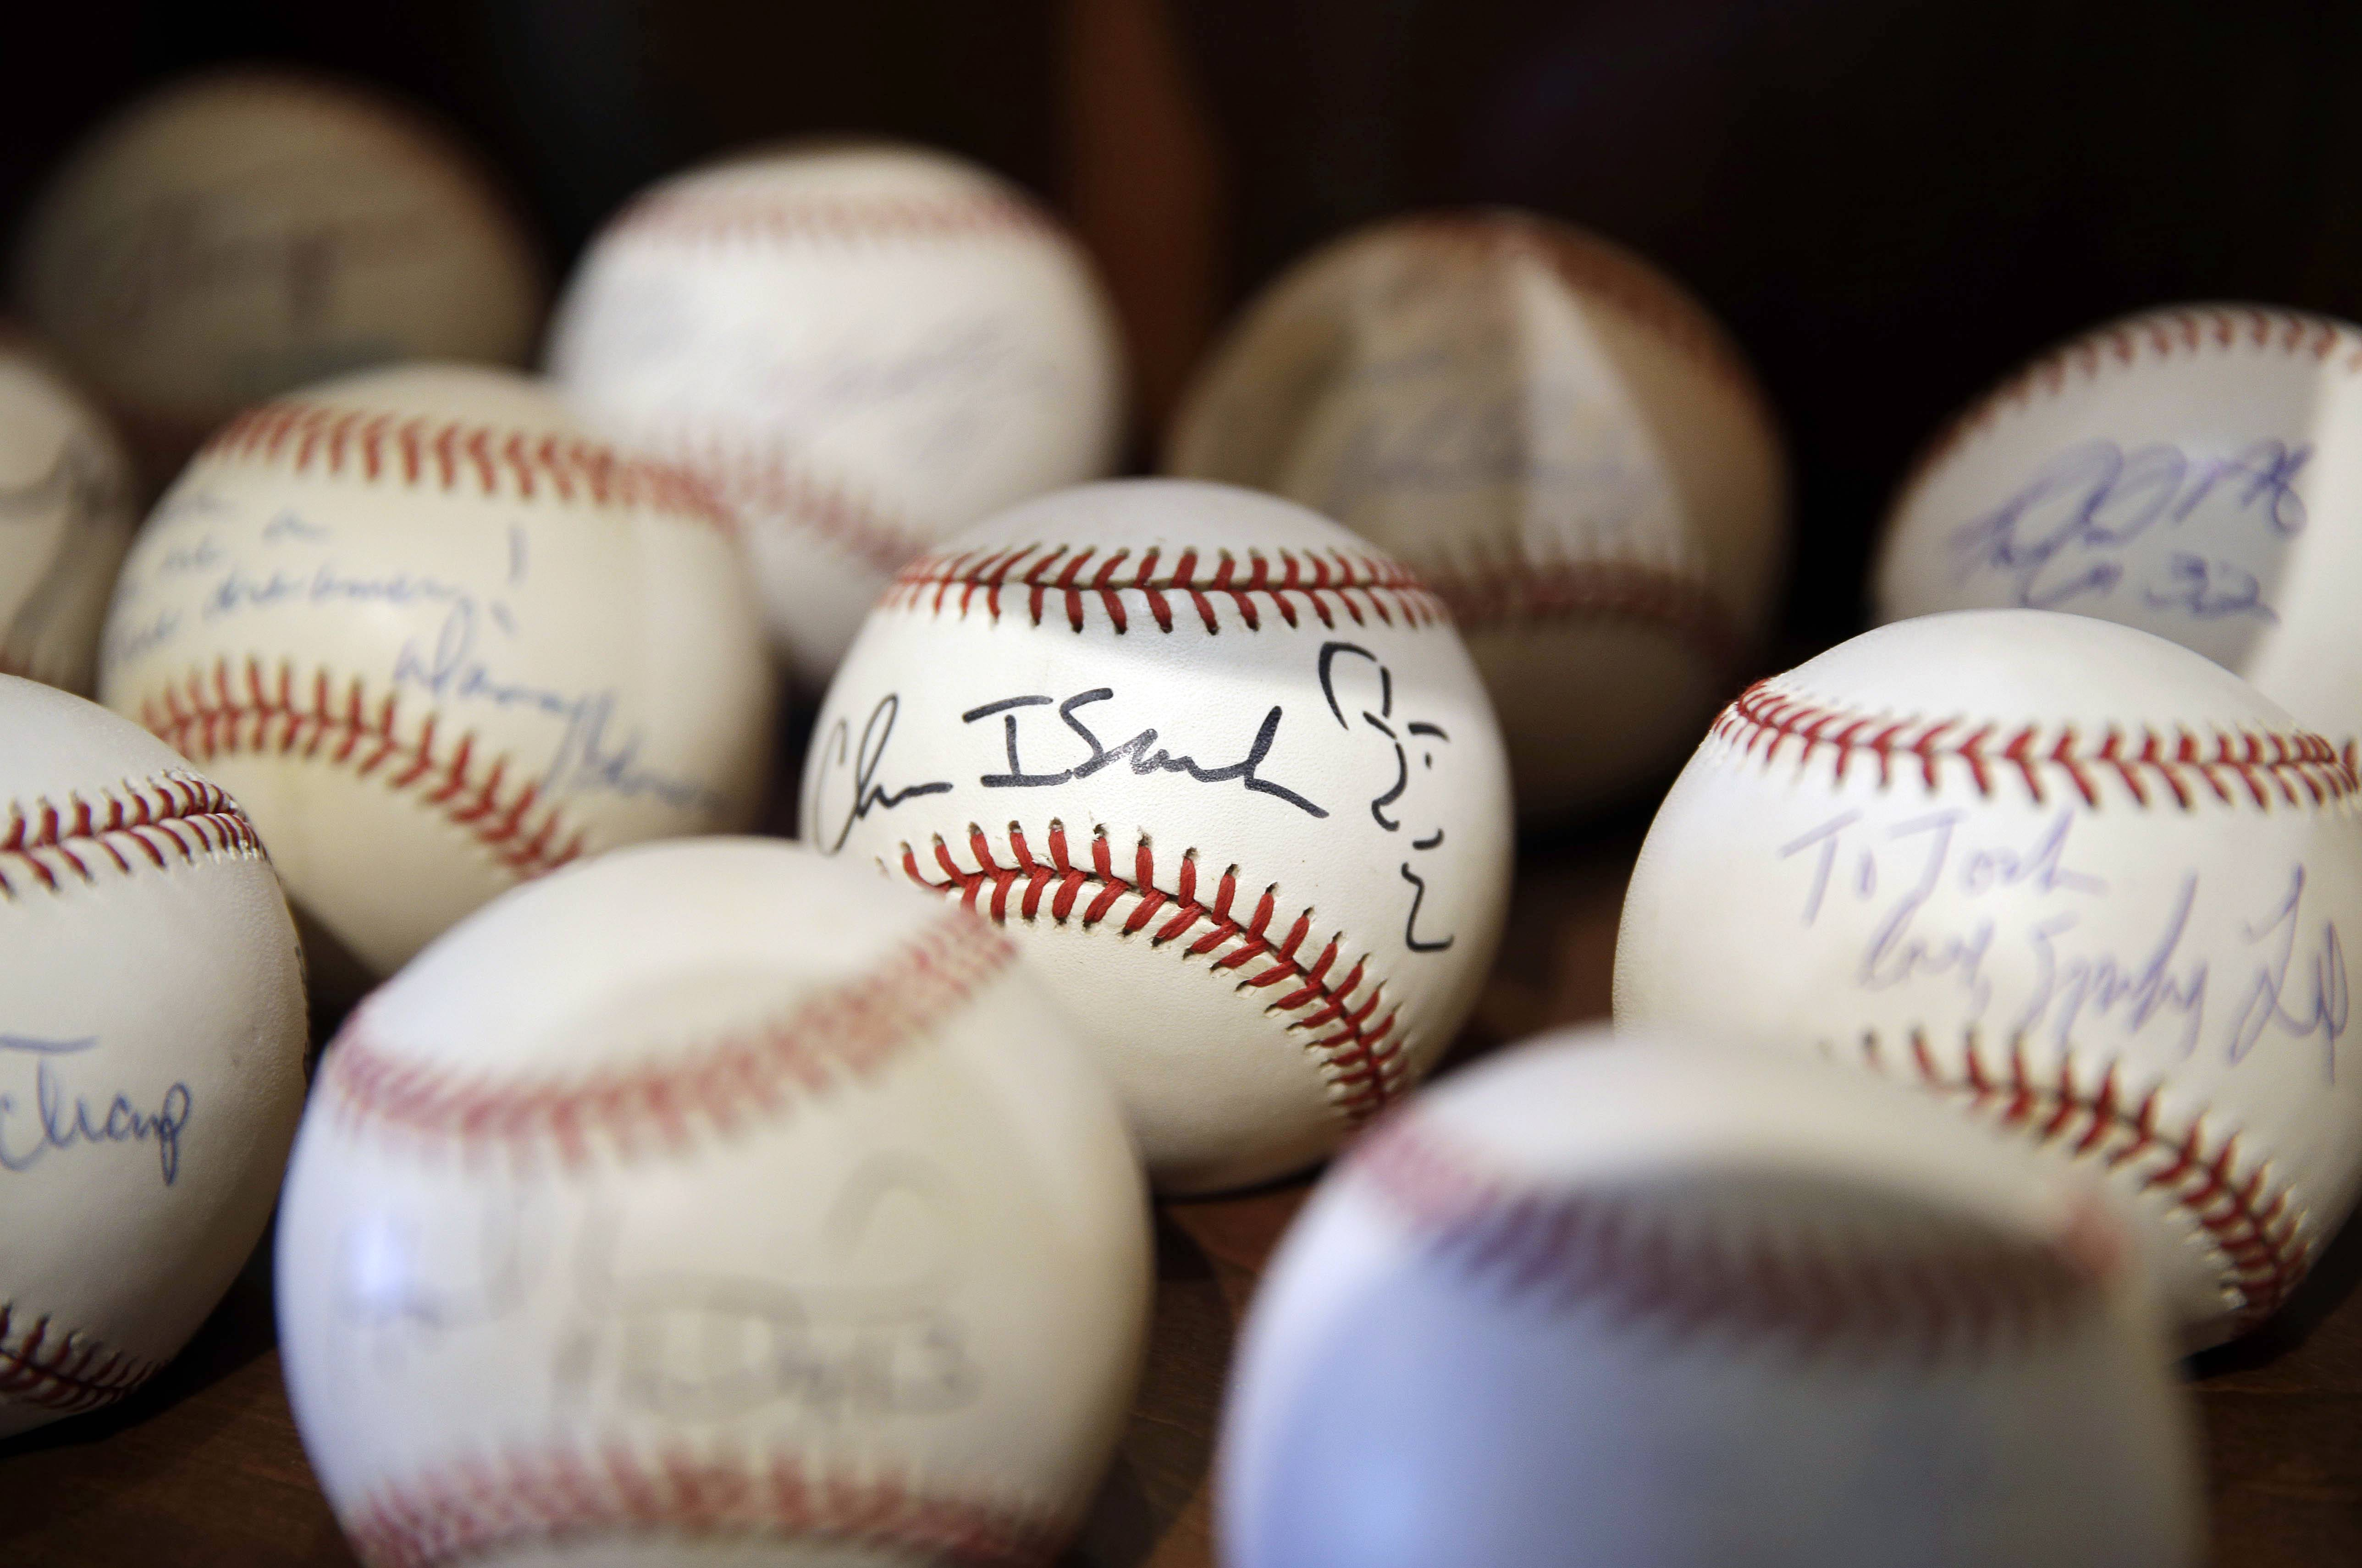 In this March 13, 2014 photo, a signed baseball with a self-portrait by rock musician Chris Isaak is shown in Dusty Baker's collection at his home in Granite Bay, Calif. Out of uniform for the first time since taking 2007 off between managerial jobs with the Cubs and Reds, Baker is not slowing down much from his pressure-packed days in the dugout.